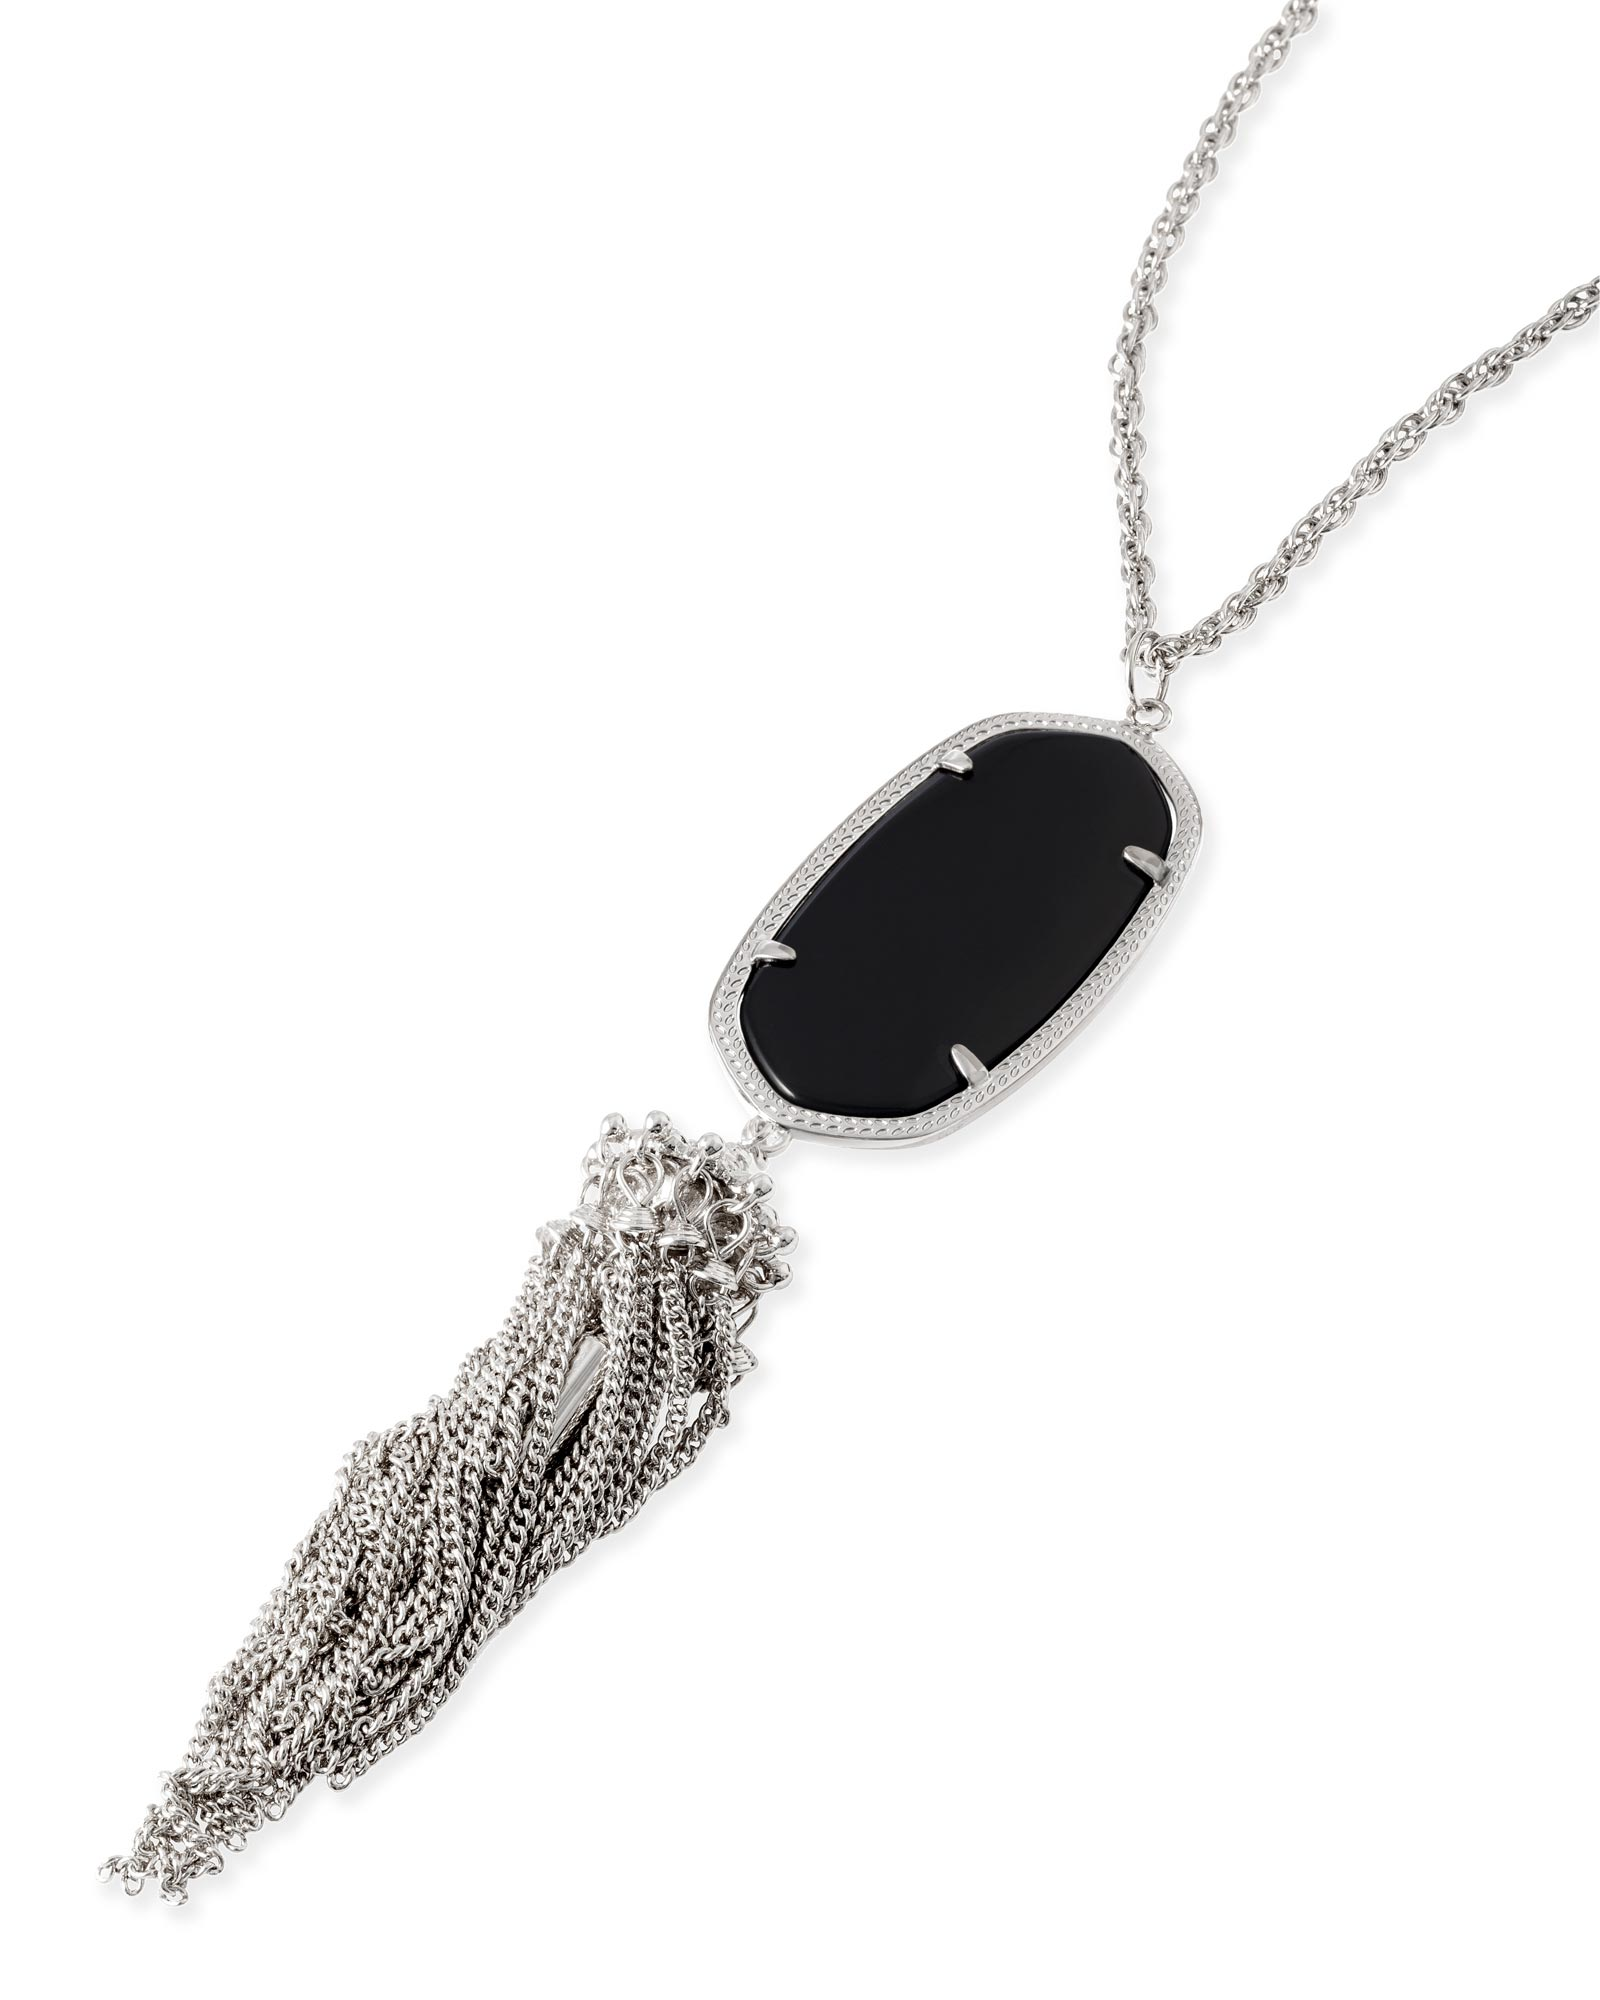 Rayne Silver Necklace in Black